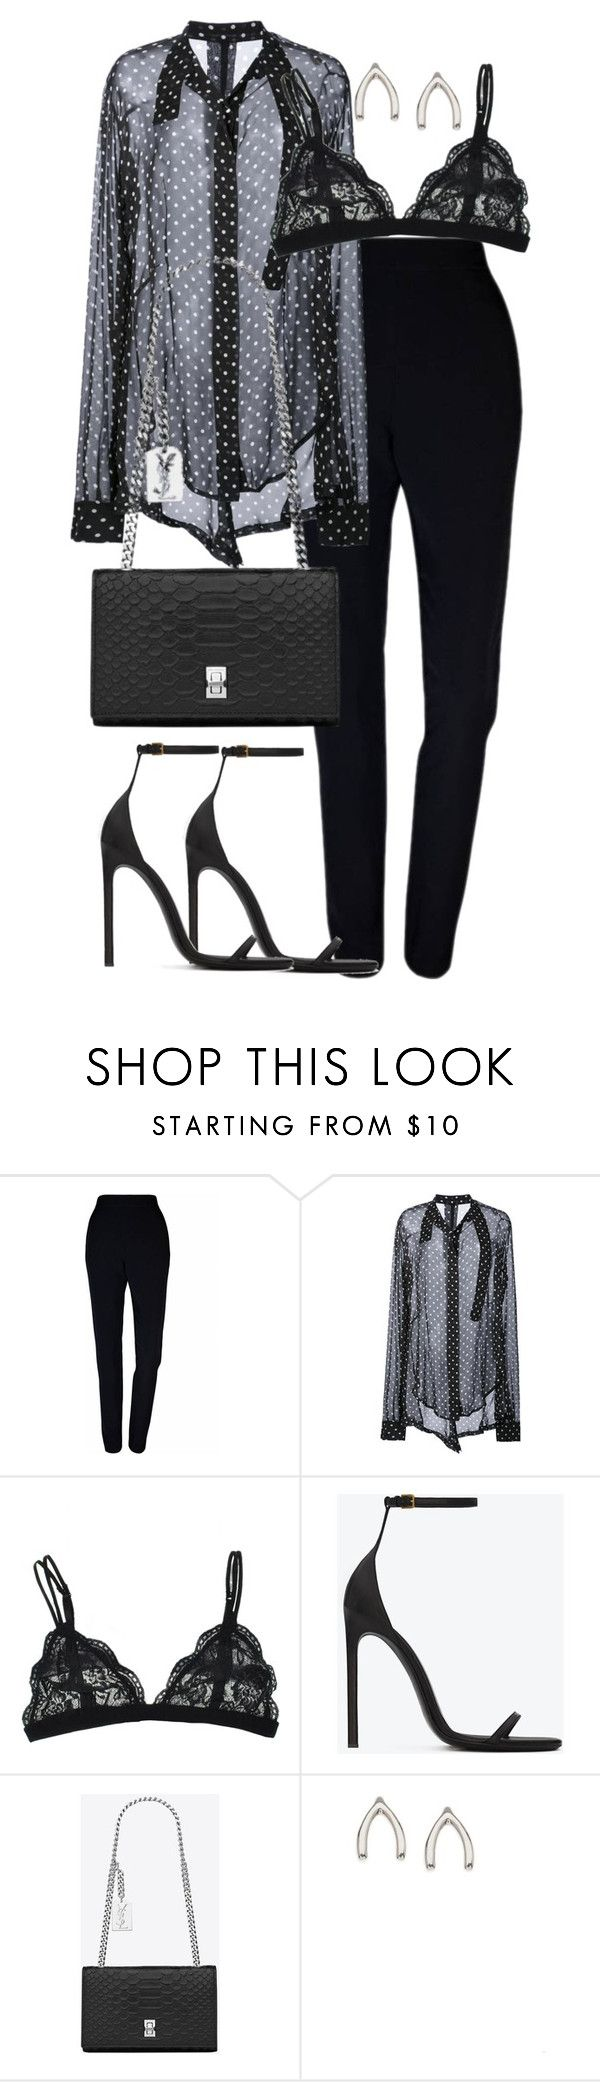 """""""Untitled #3132"""" by theeuropeancloset ❤ liked on Polyvore featuring Plakinger, Unravel, Yves Saint Laurent and Orelia"""